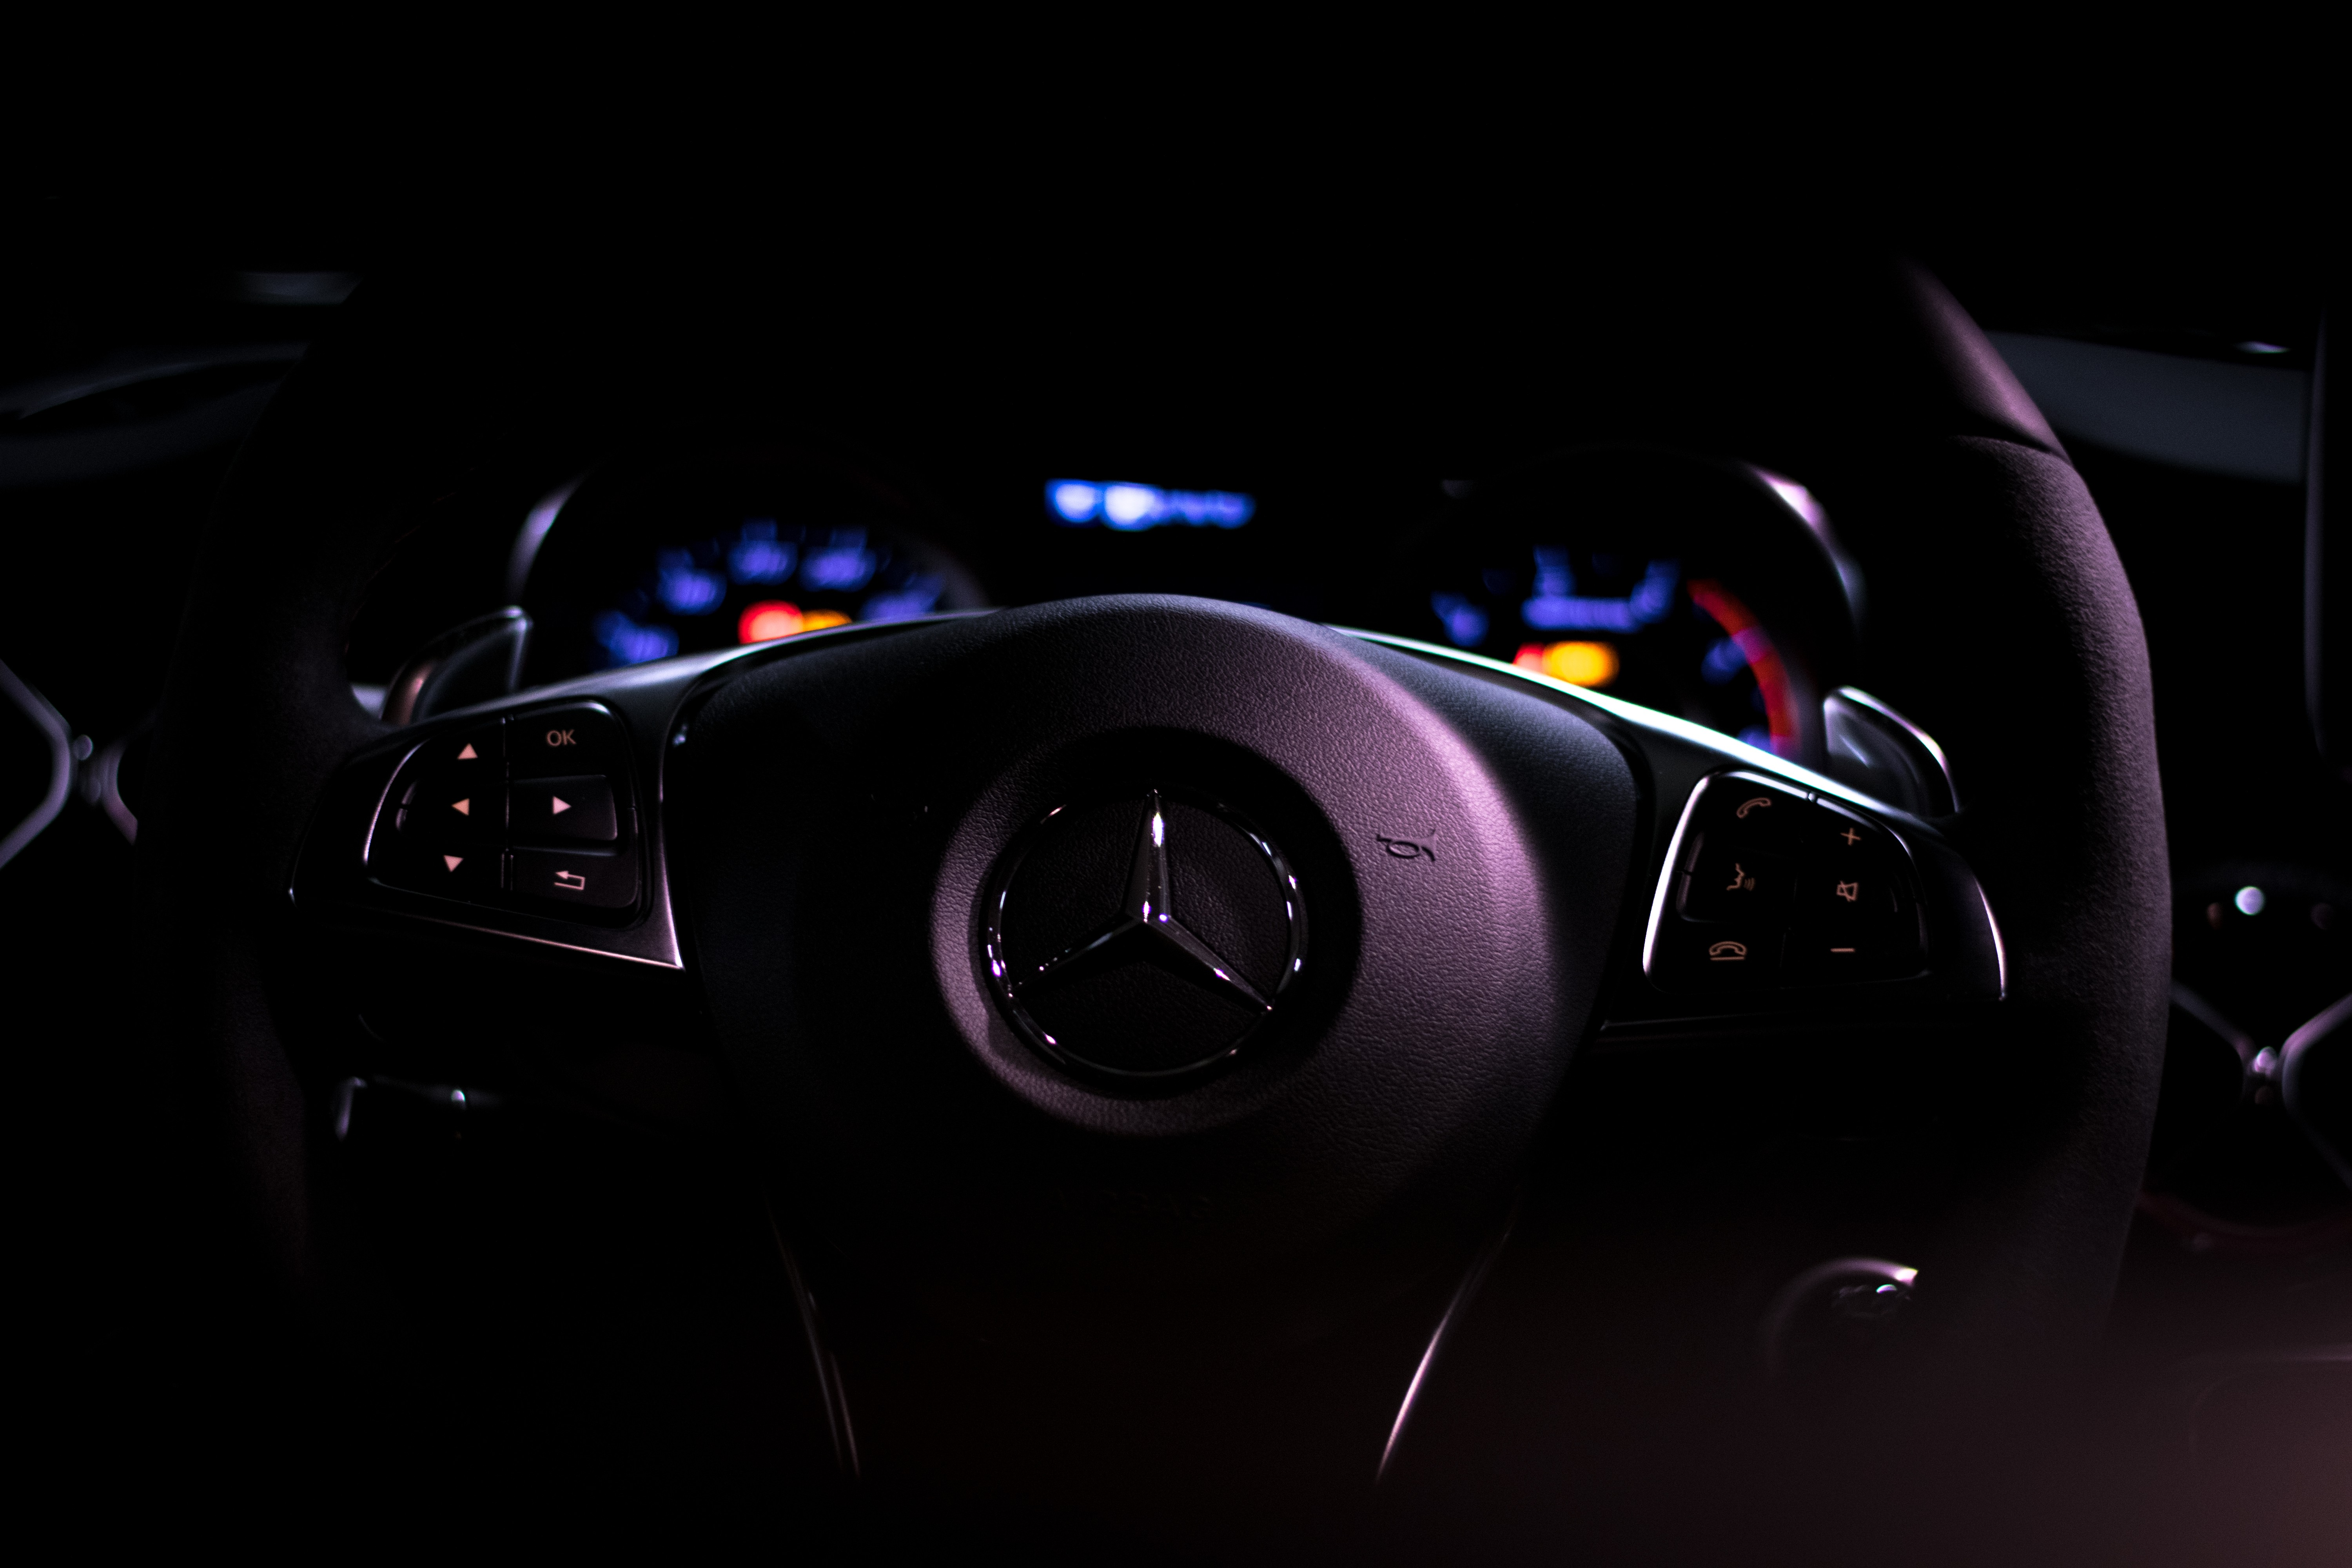 Mercedes Car Steering Full Hd Hd Cars 4k Wallpapers Images Backgrounds Photos And Pictures